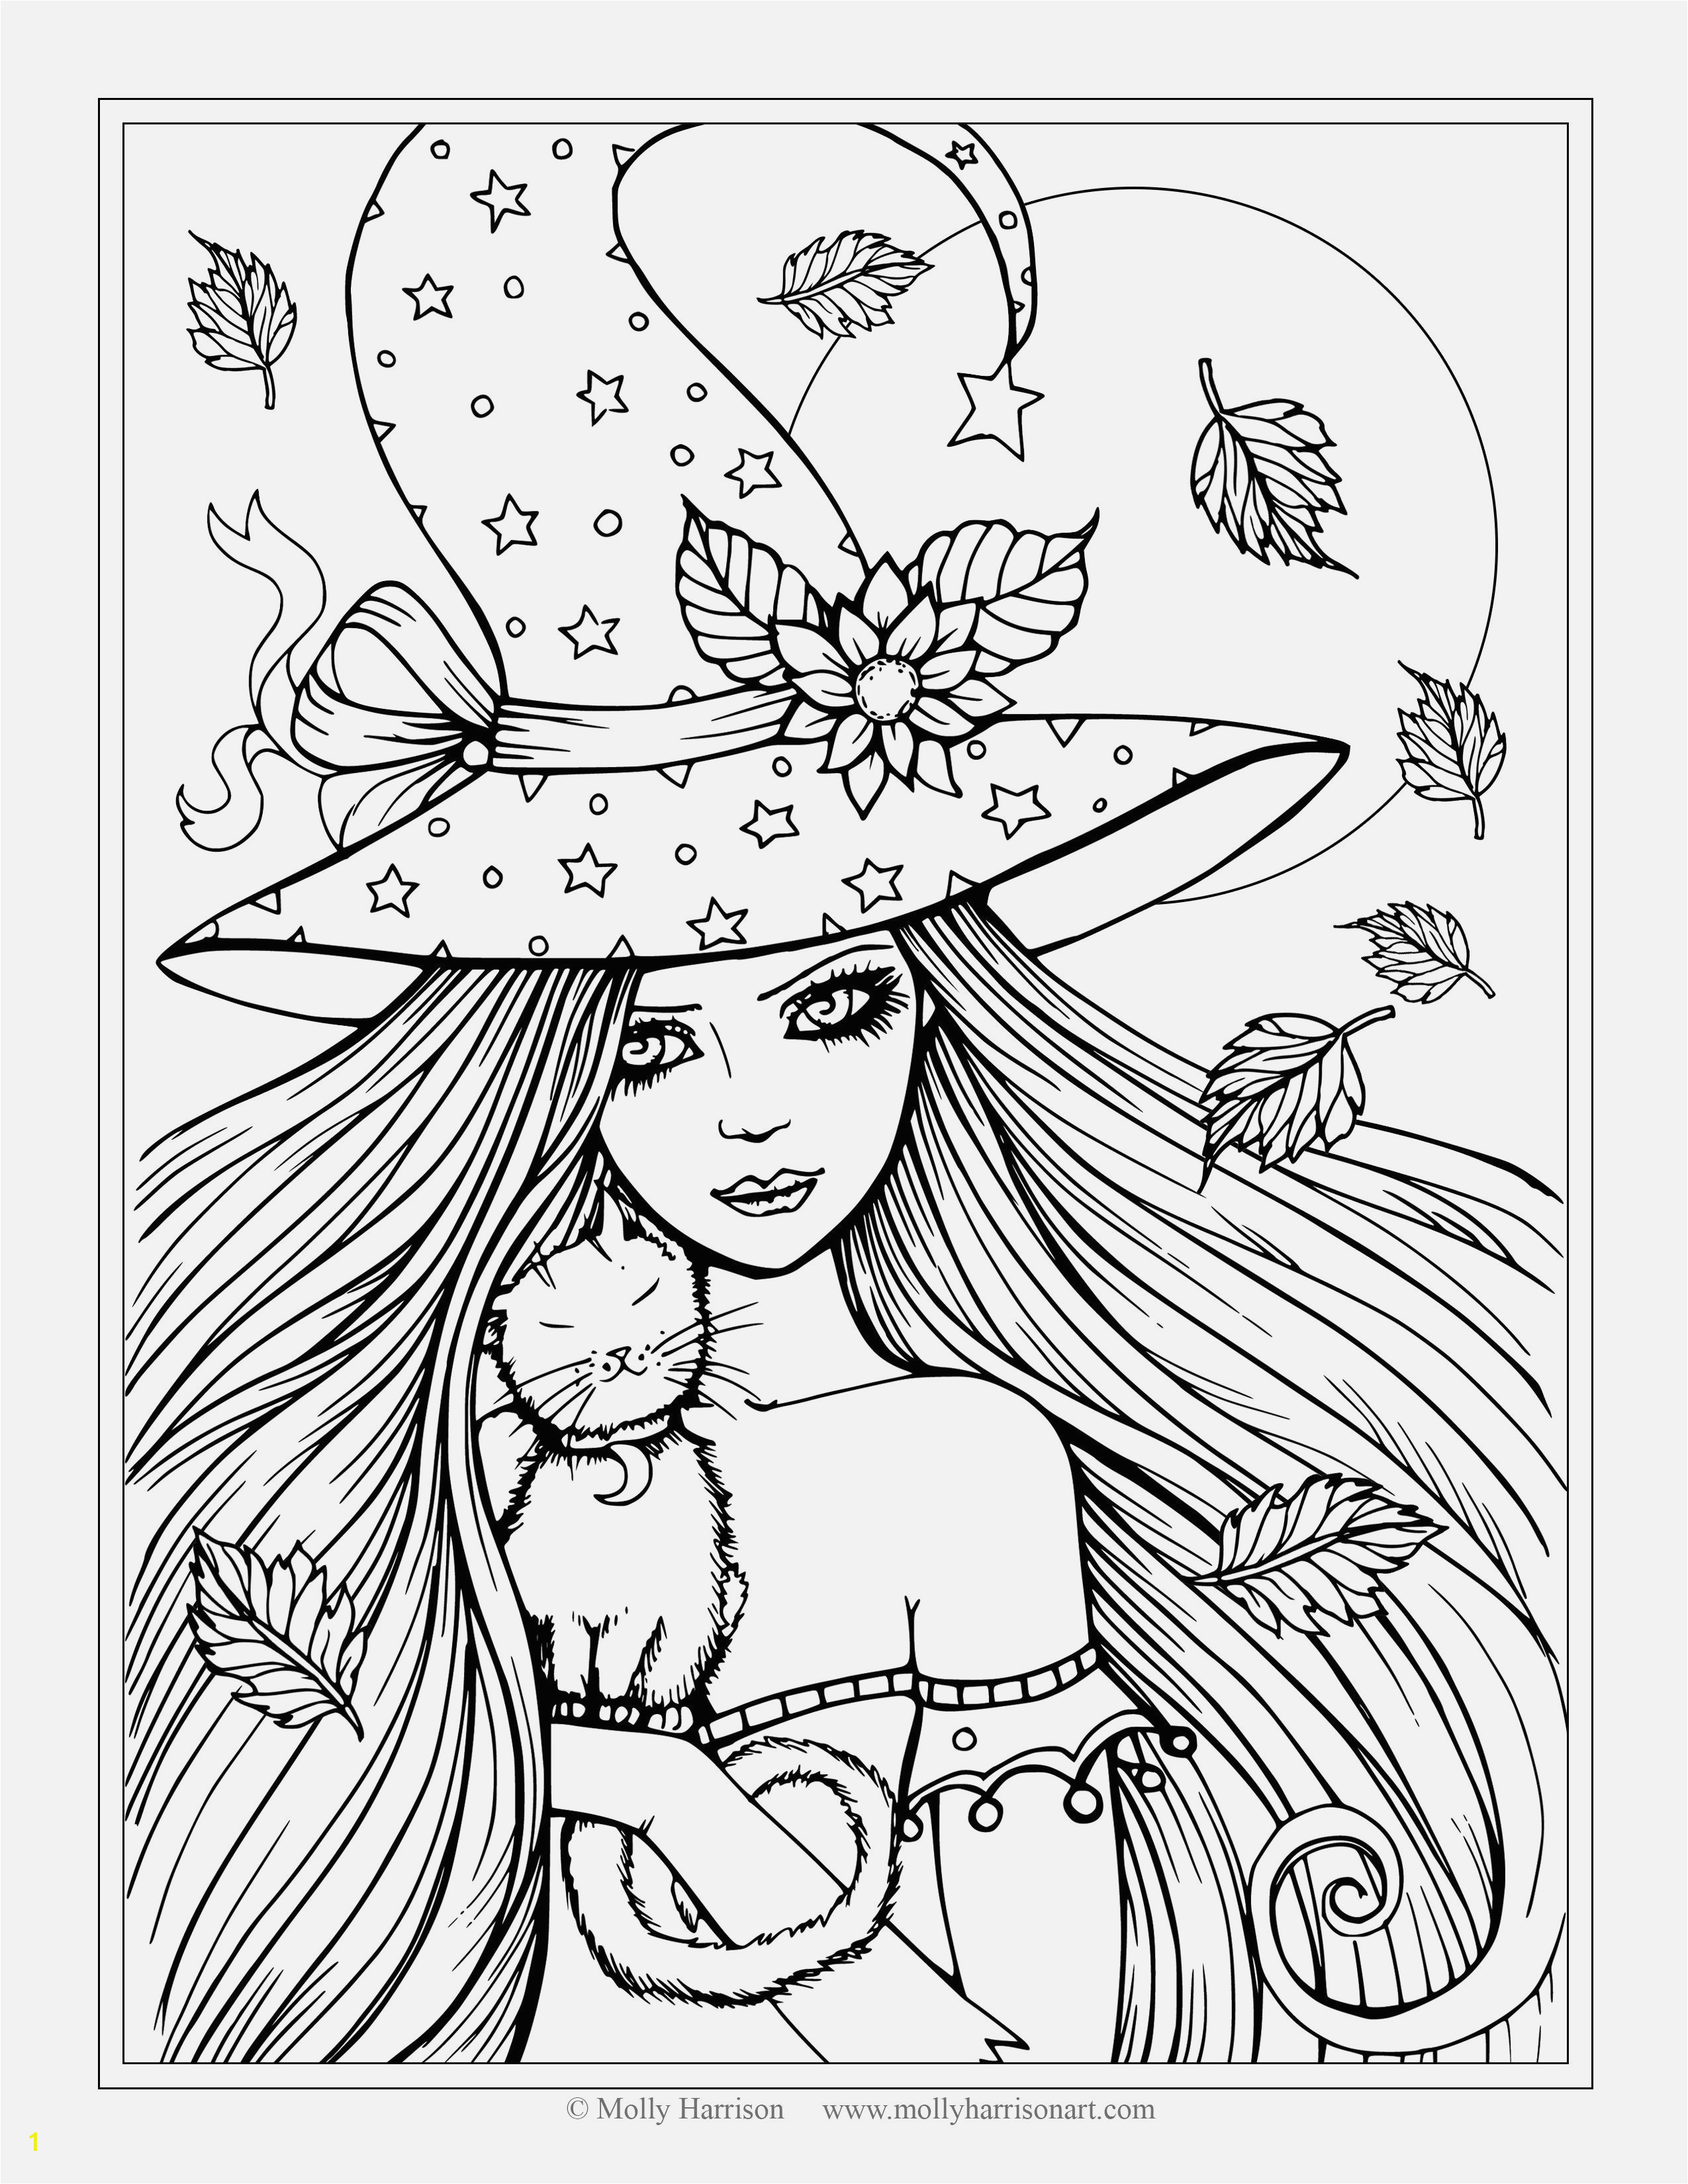 Coloring Pages Hard Free Printable Coloring Pages for Girls 12 and Up Luxury Jesus Gather with